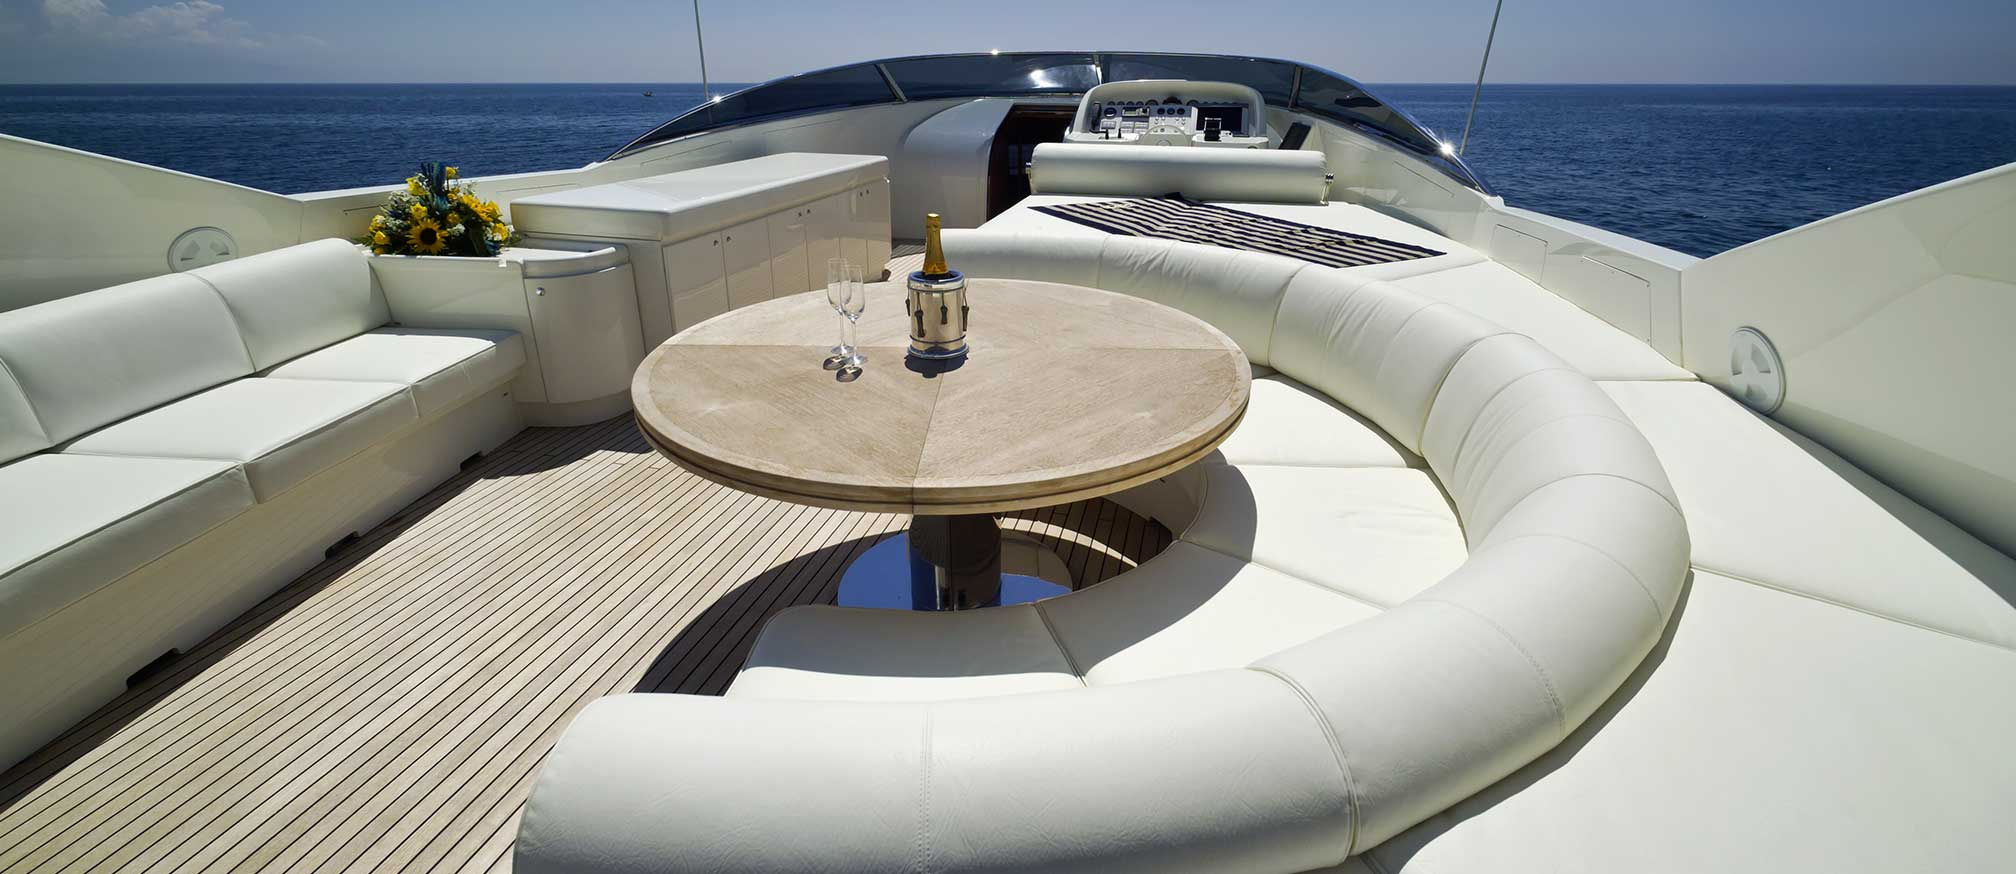 Charter yacht with champagne